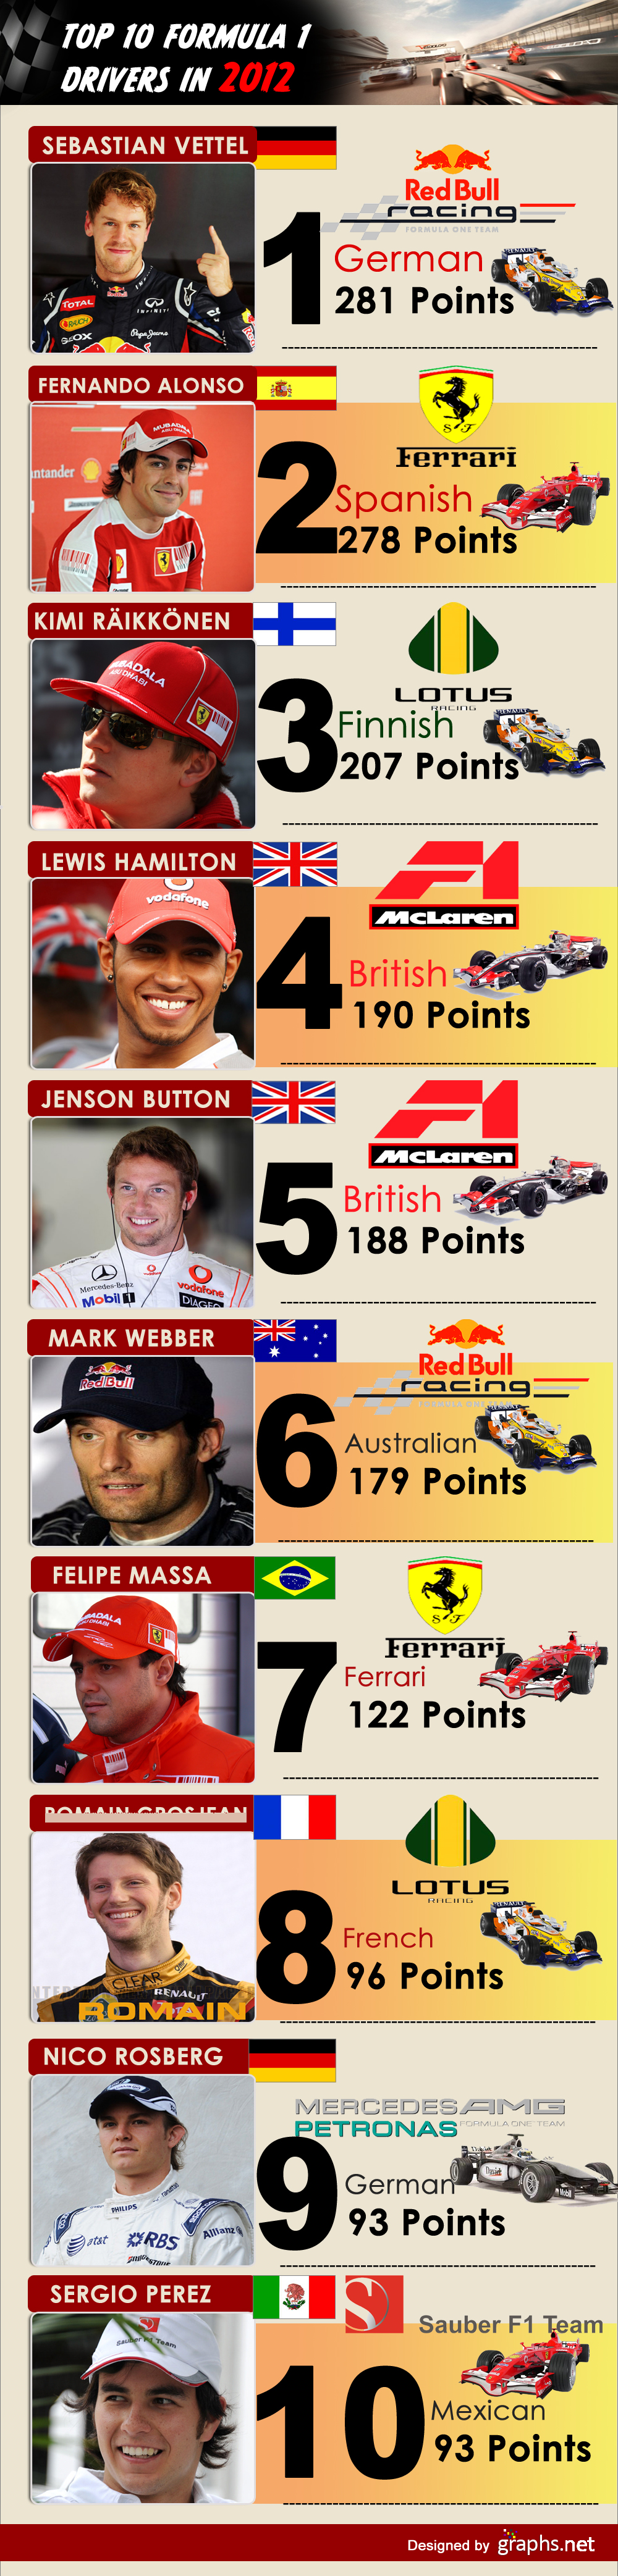 Top 10 Formula 1 Drivers in 2012